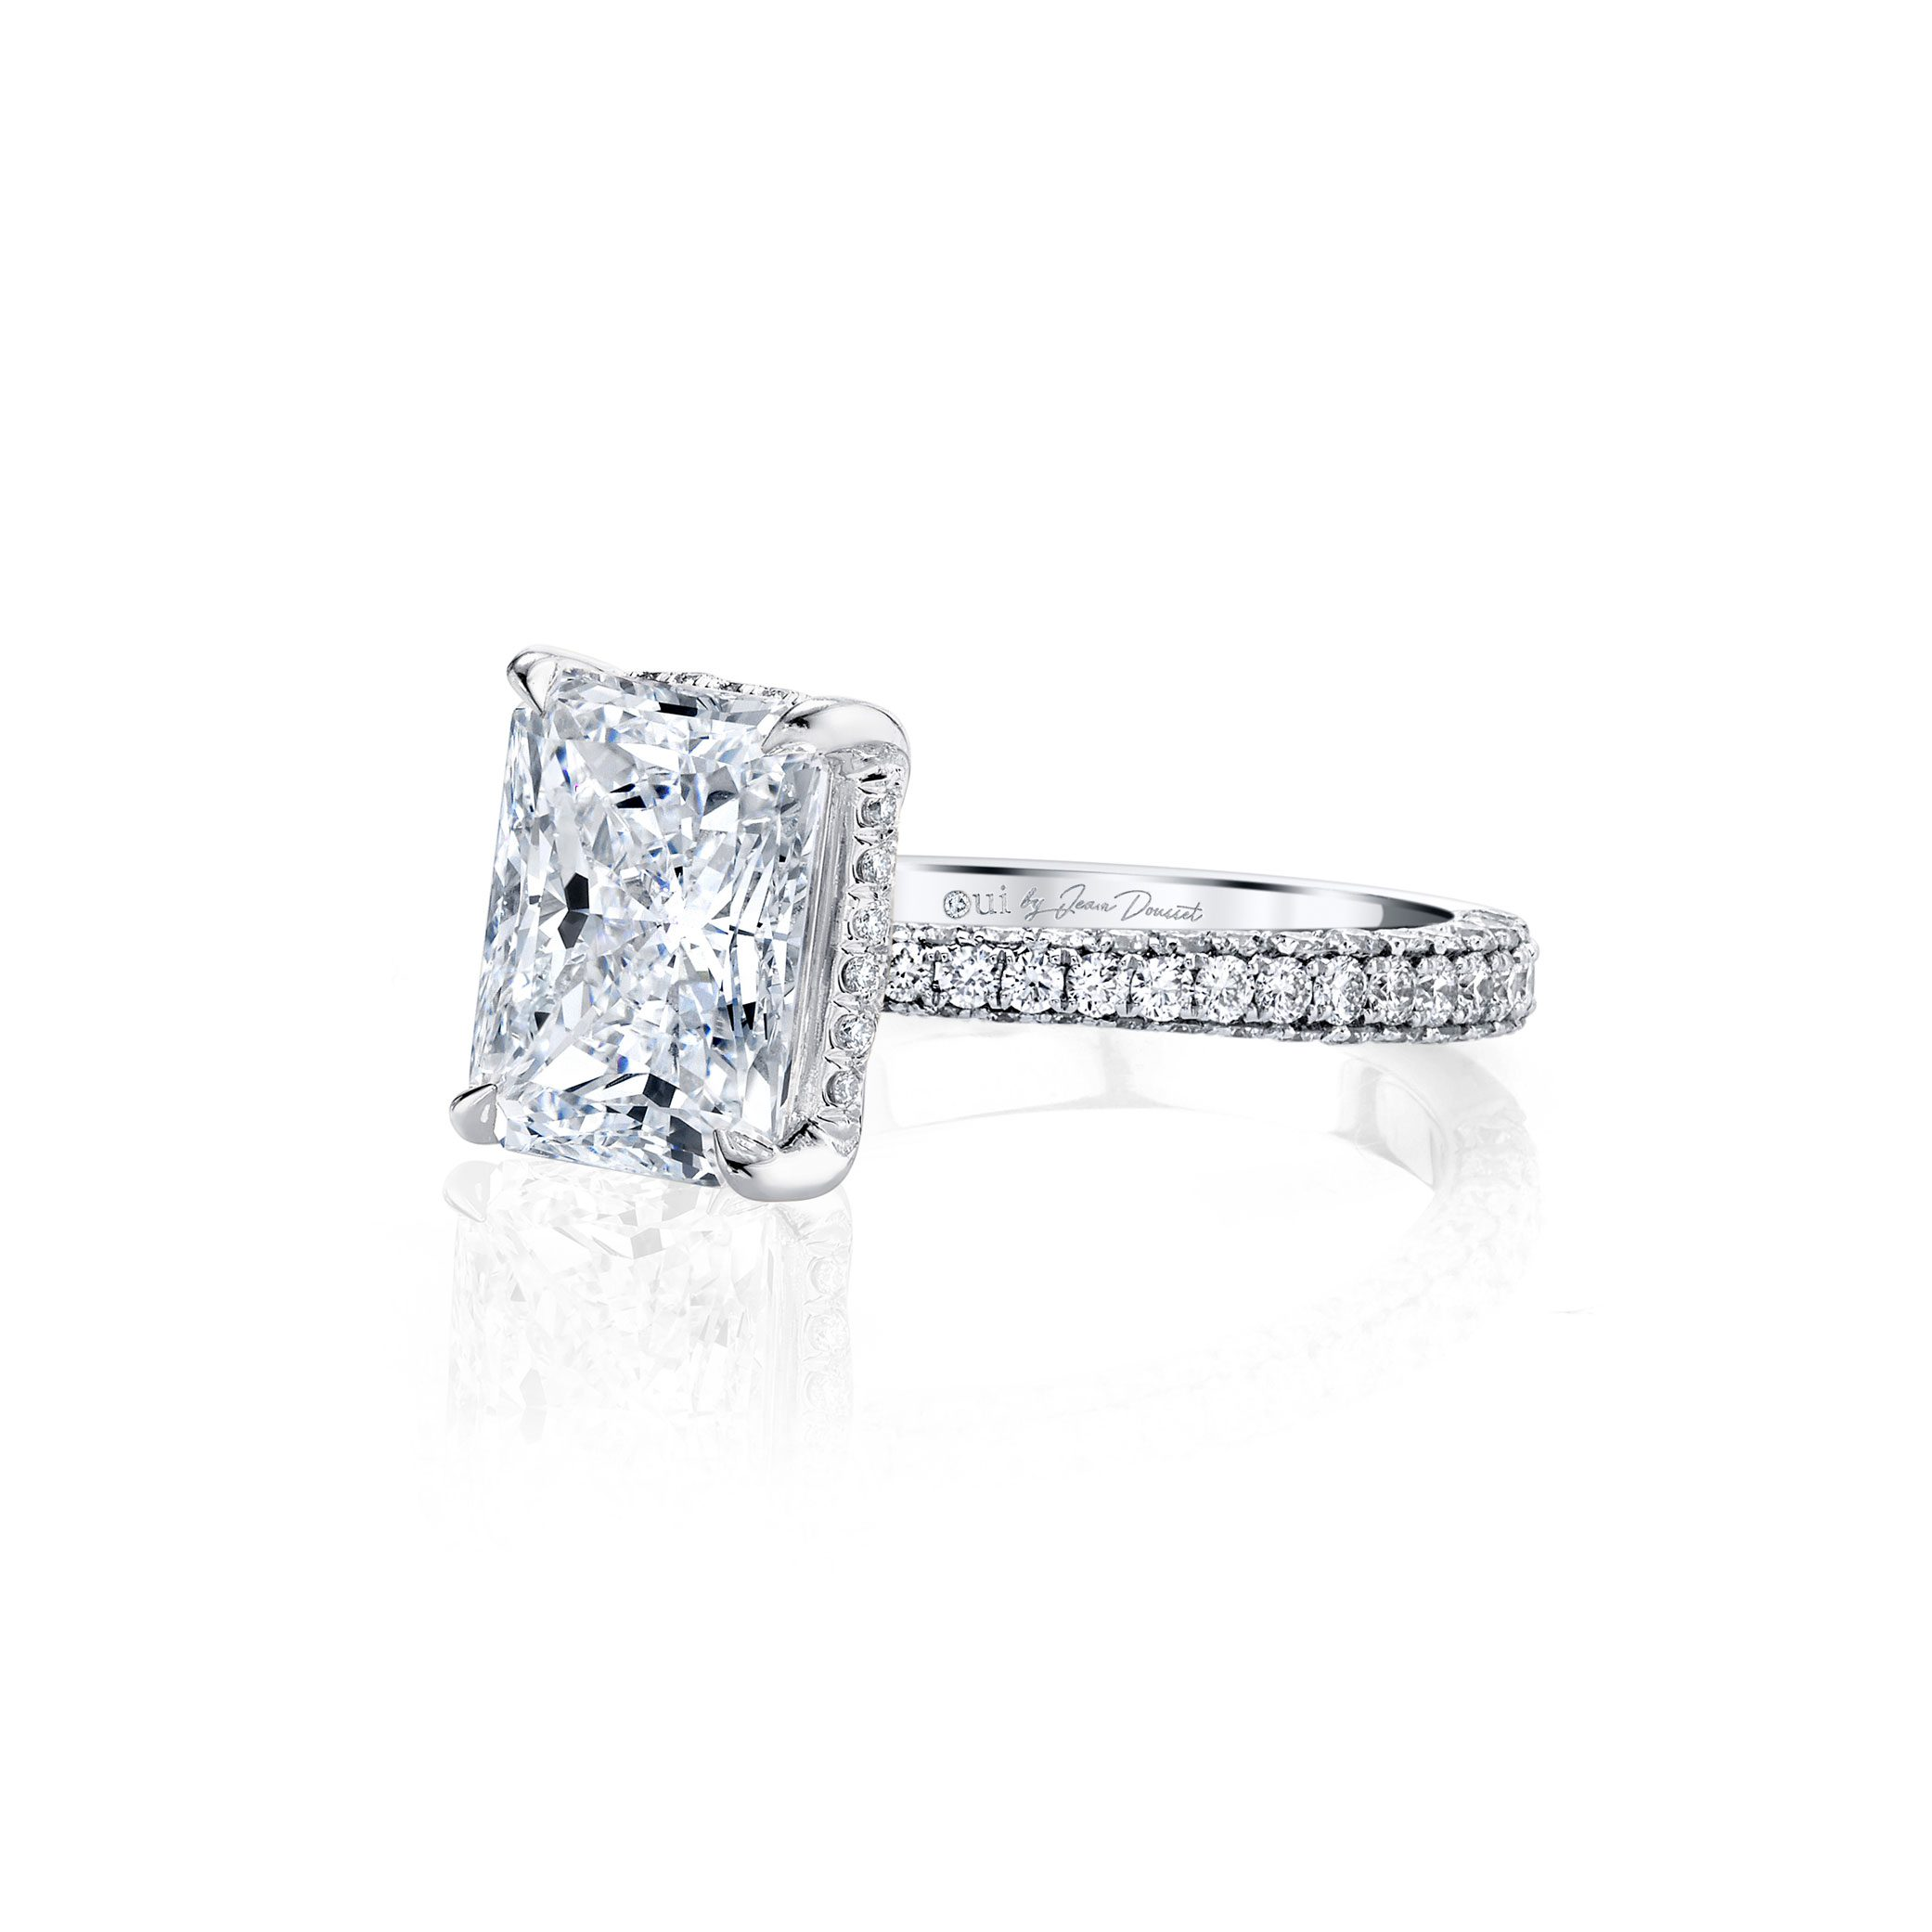 Jacqueline Radiant Cut Lab Grown Diamond Solitaire Engagement Ring Pavé White Gold Band from Oui